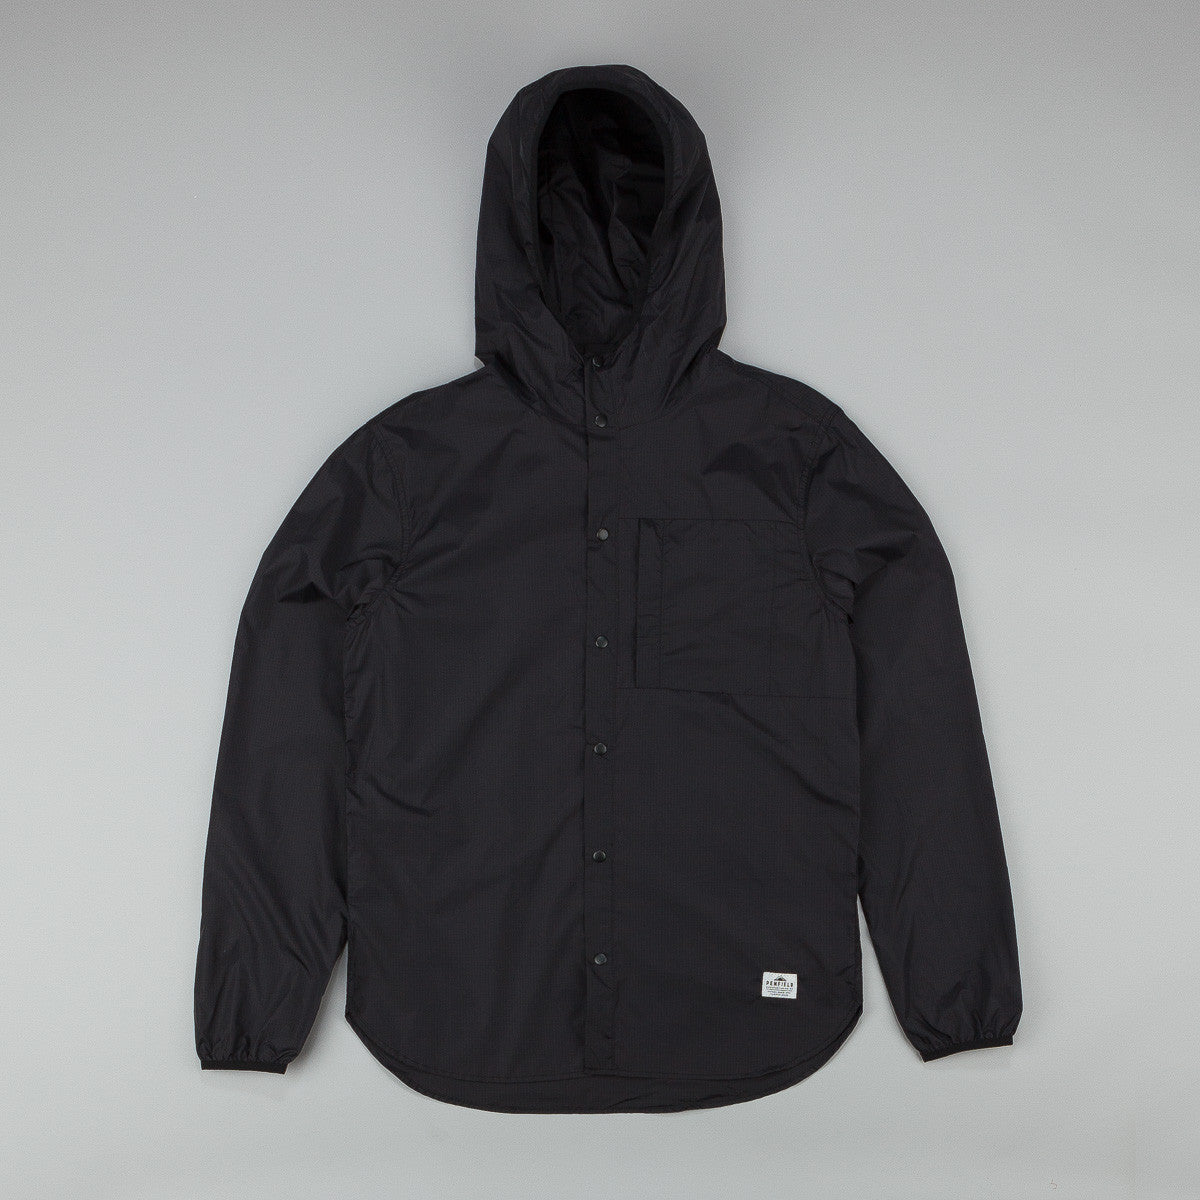 Penfield Fallowfield Ripstop Nylon Packable Hooded Shirt